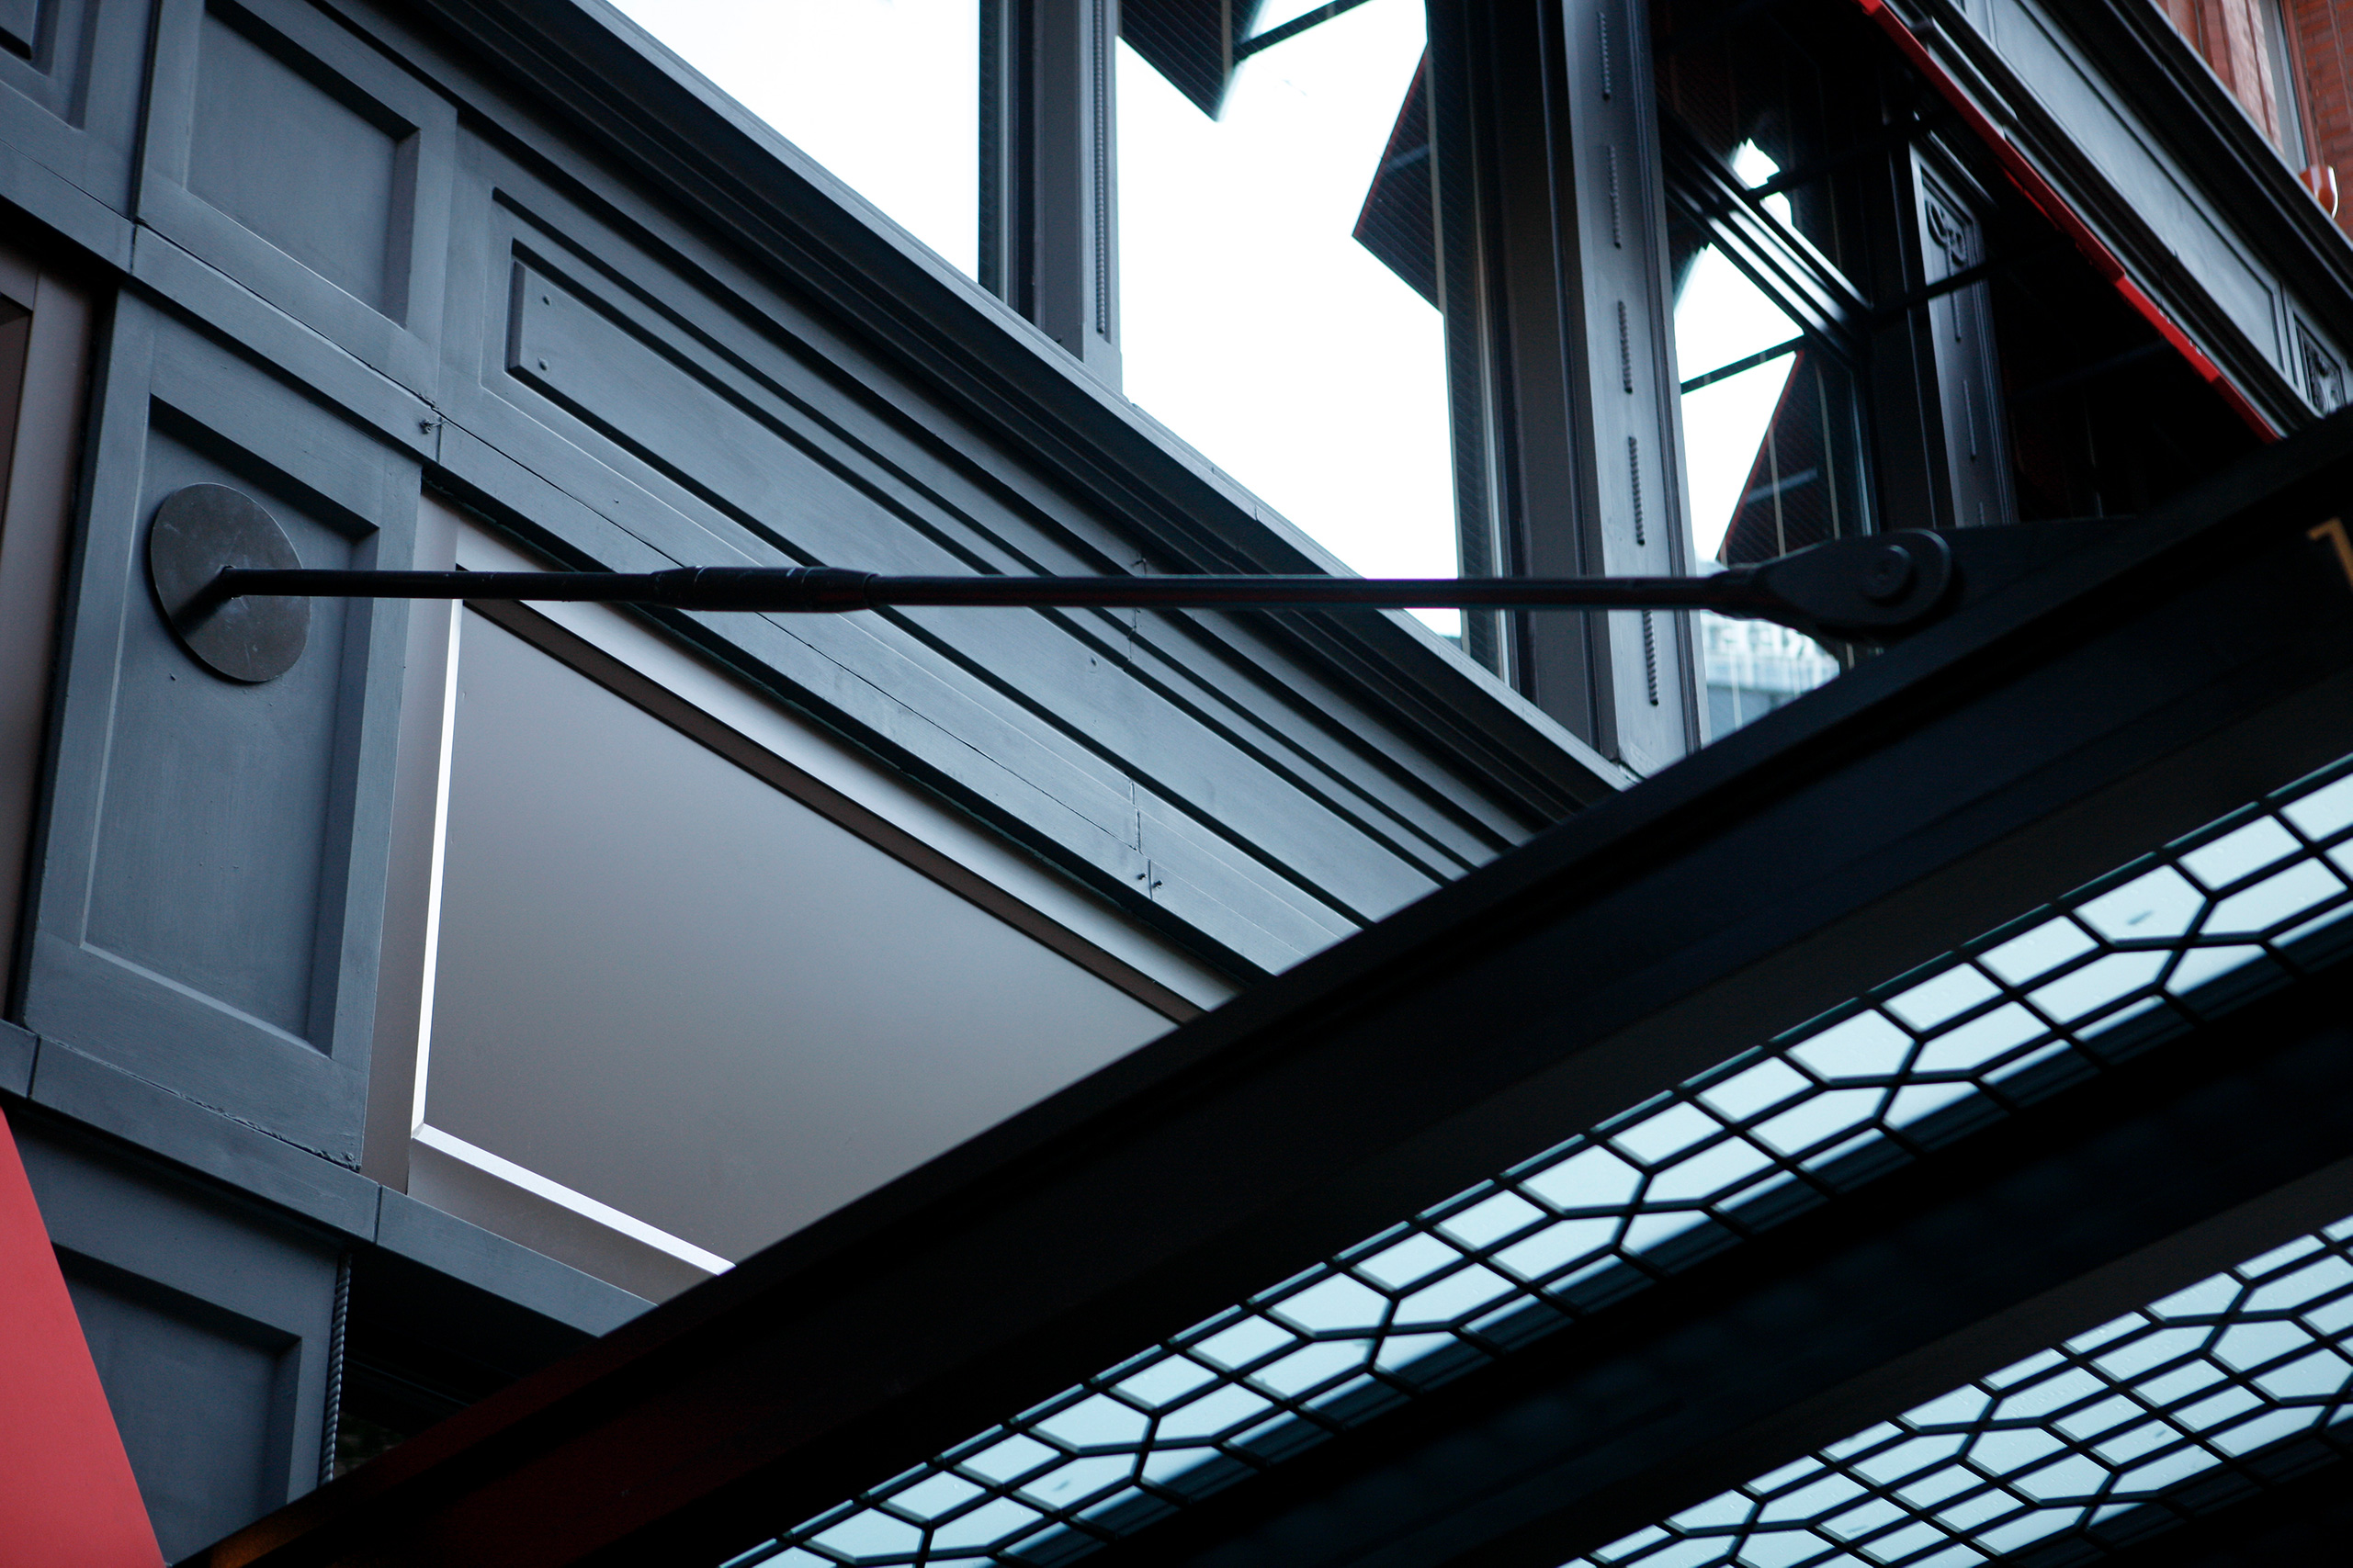 Detail of 101 Arch St, Boston, MA Portico – supported by Ronstan Carbon Steel Tension Rods